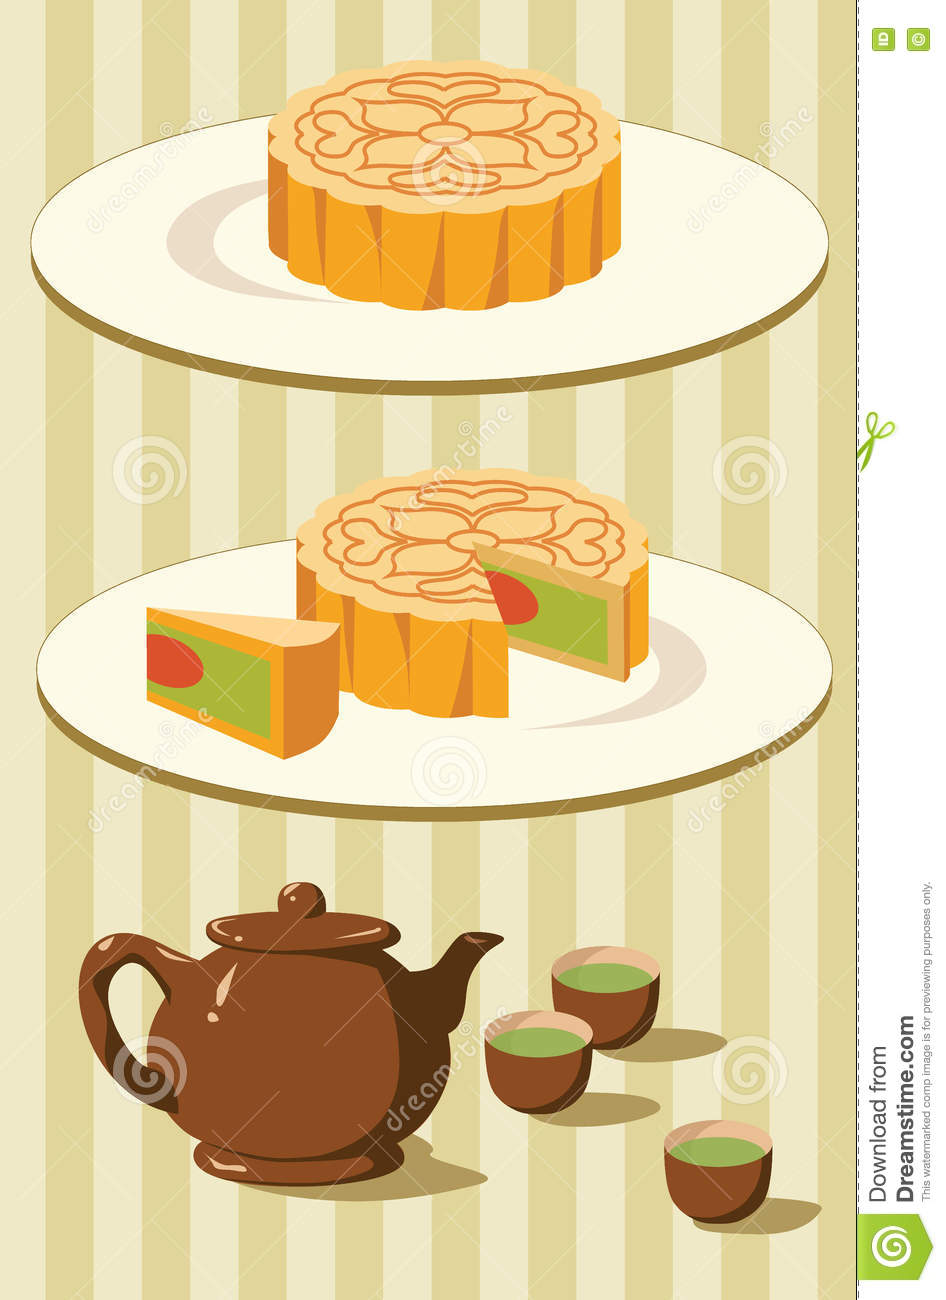 Moon Cake Clip Art : Chinese Moon Cake And Tea For Mid Autumn Festival Stock ...